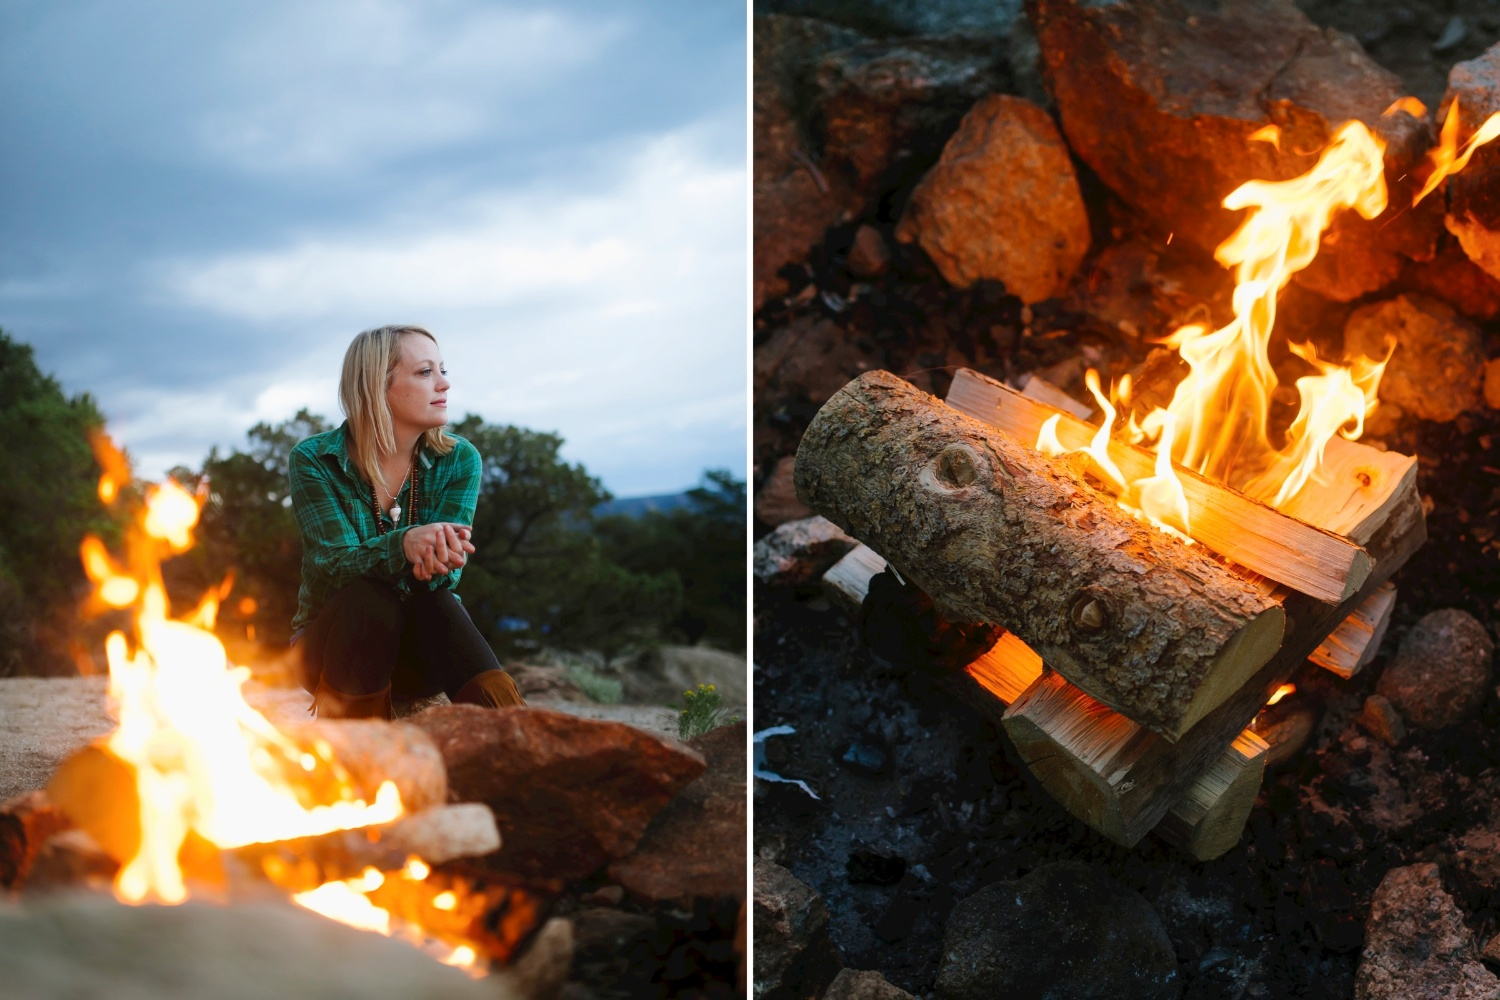 Adventure engagement photoshoot // sitting by a fire // Bonfire engagement shoot by Maddie Mae Photography